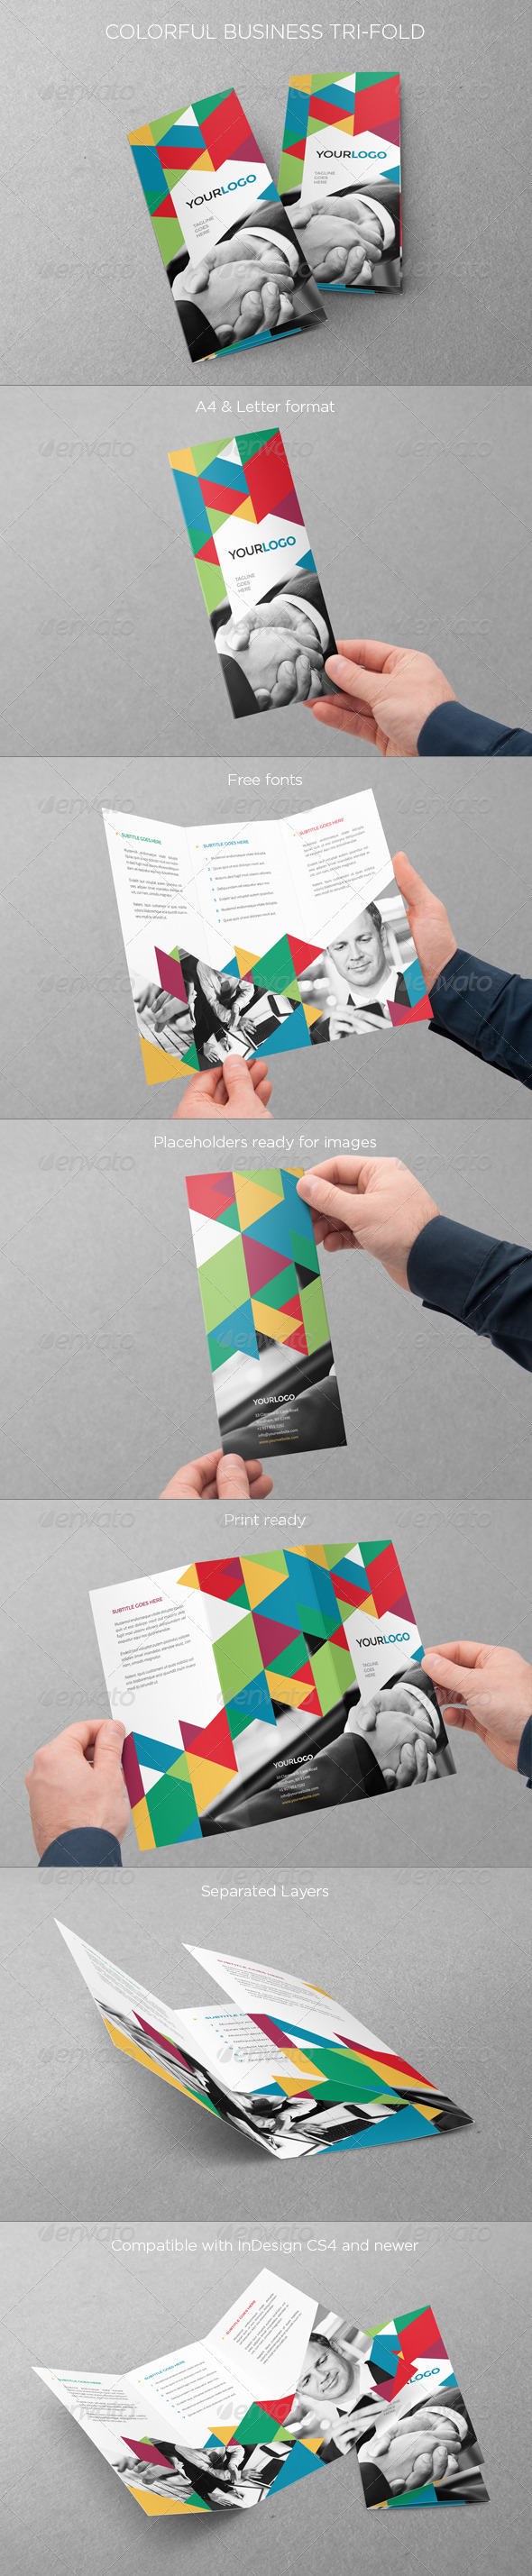 GraphicRiver Colorful Business Trifold 7687440